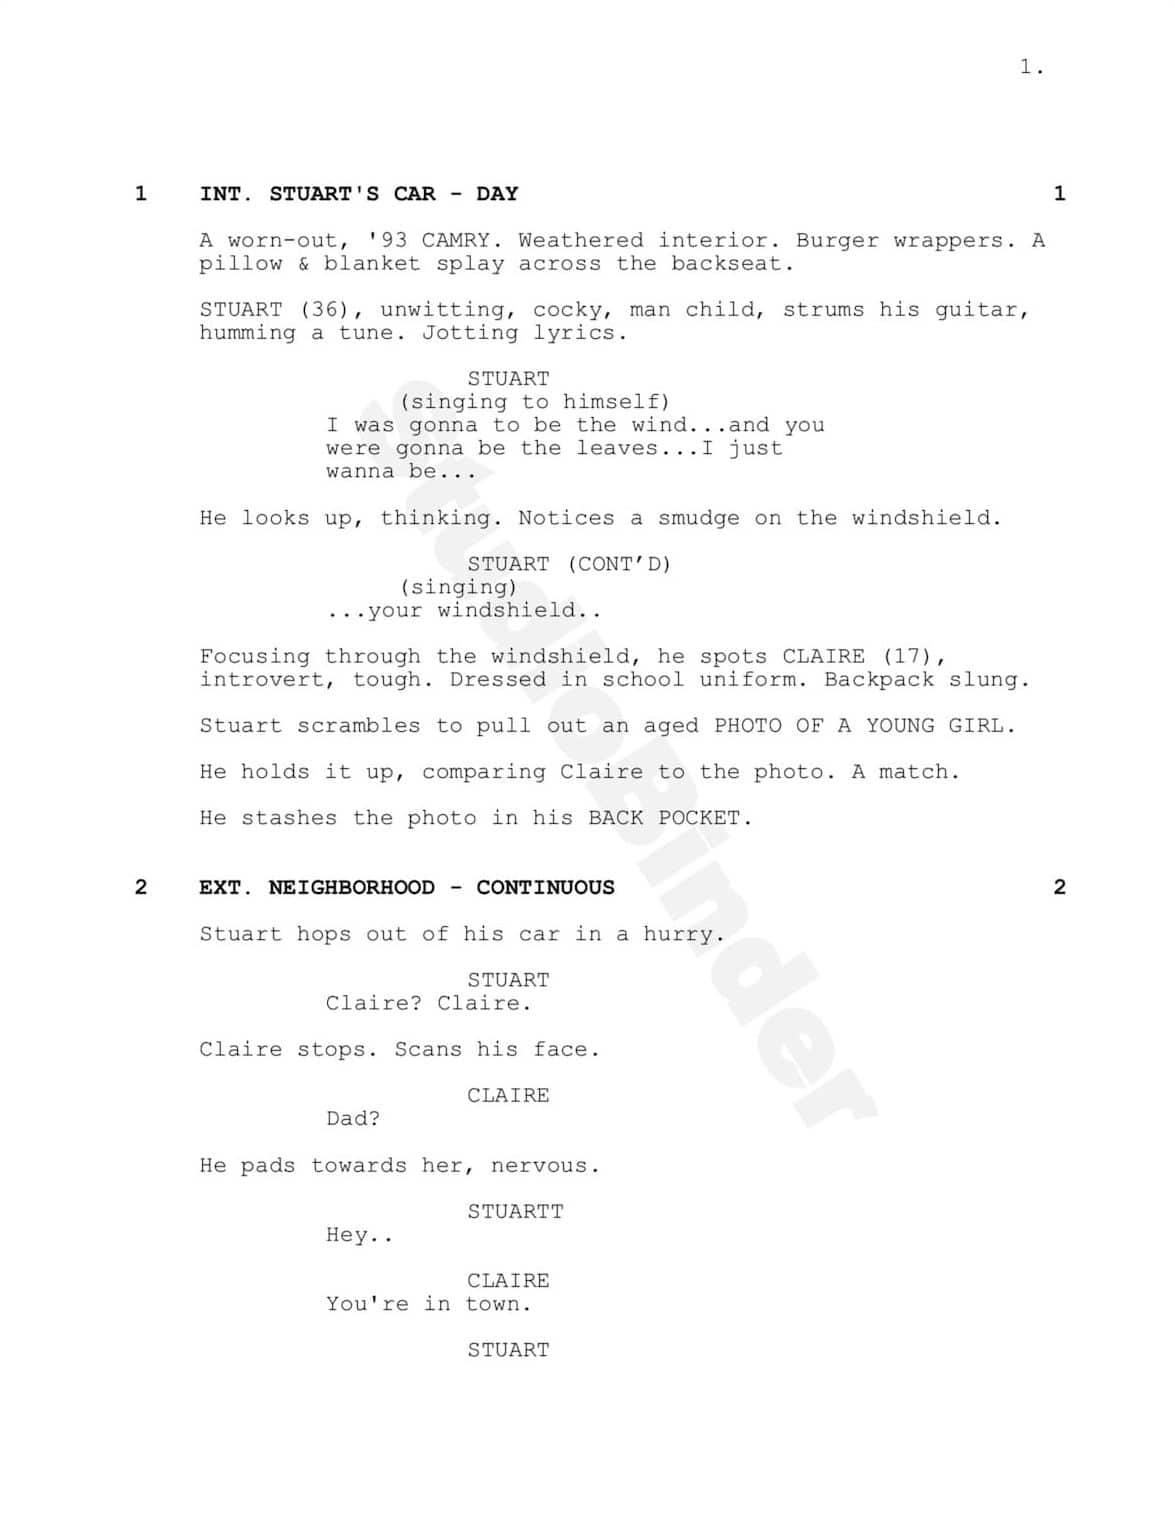 How to Protect Your Screenplays with Watermarked PDFs - StudioBinder Scriptwriting Software